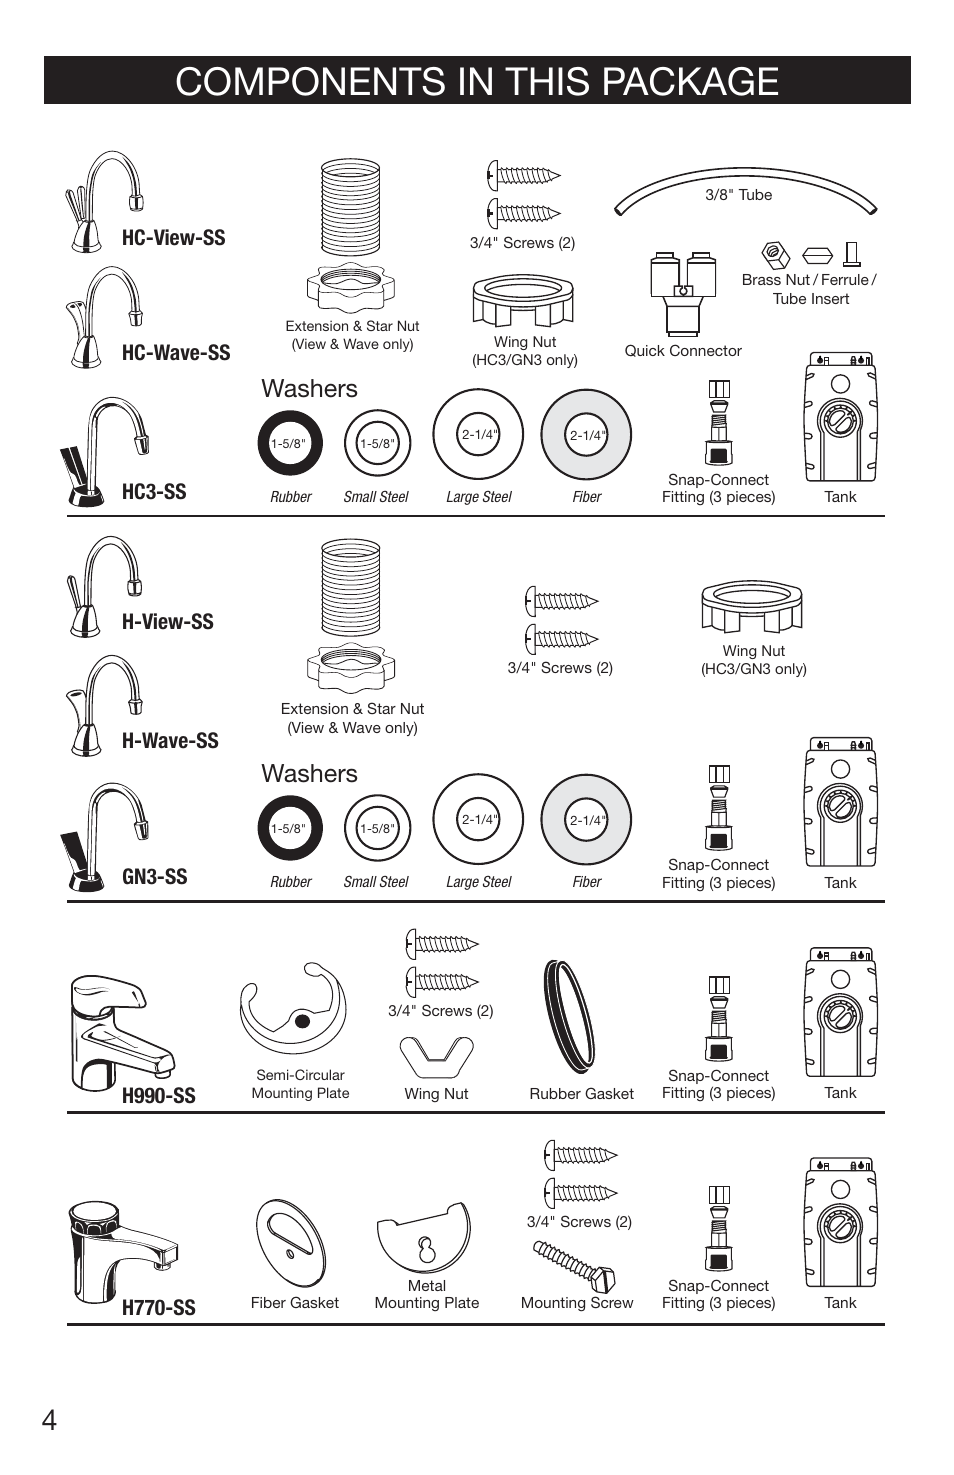 Components in this package, Washers, H770-ss